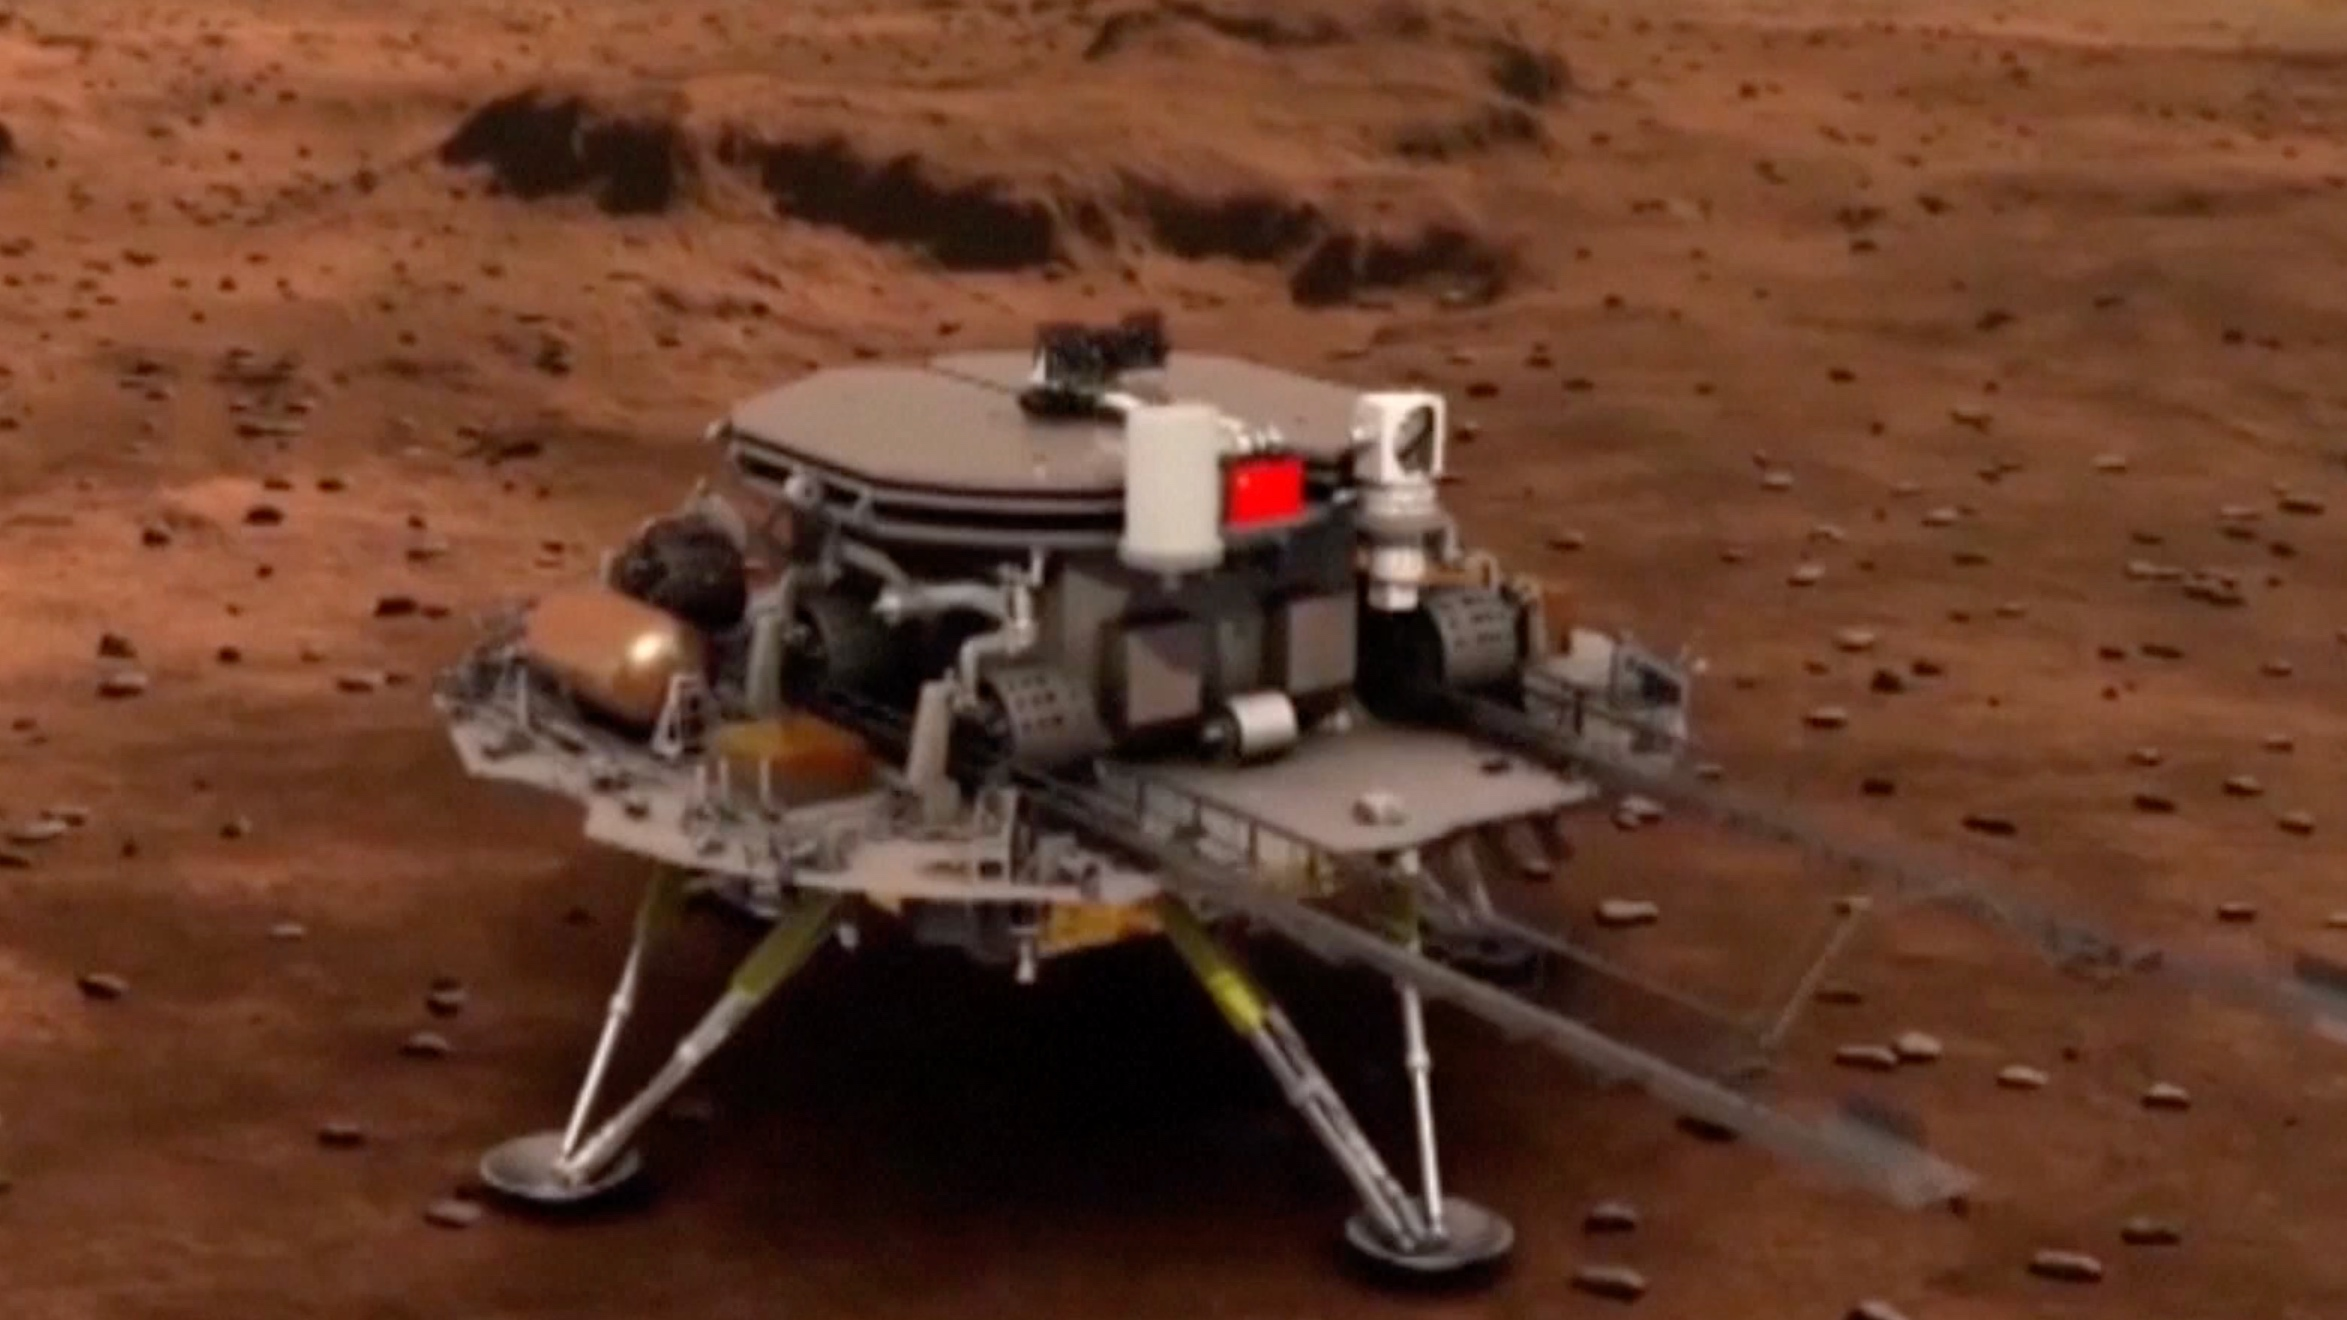 Expert explains China's first Mars mission between July and August